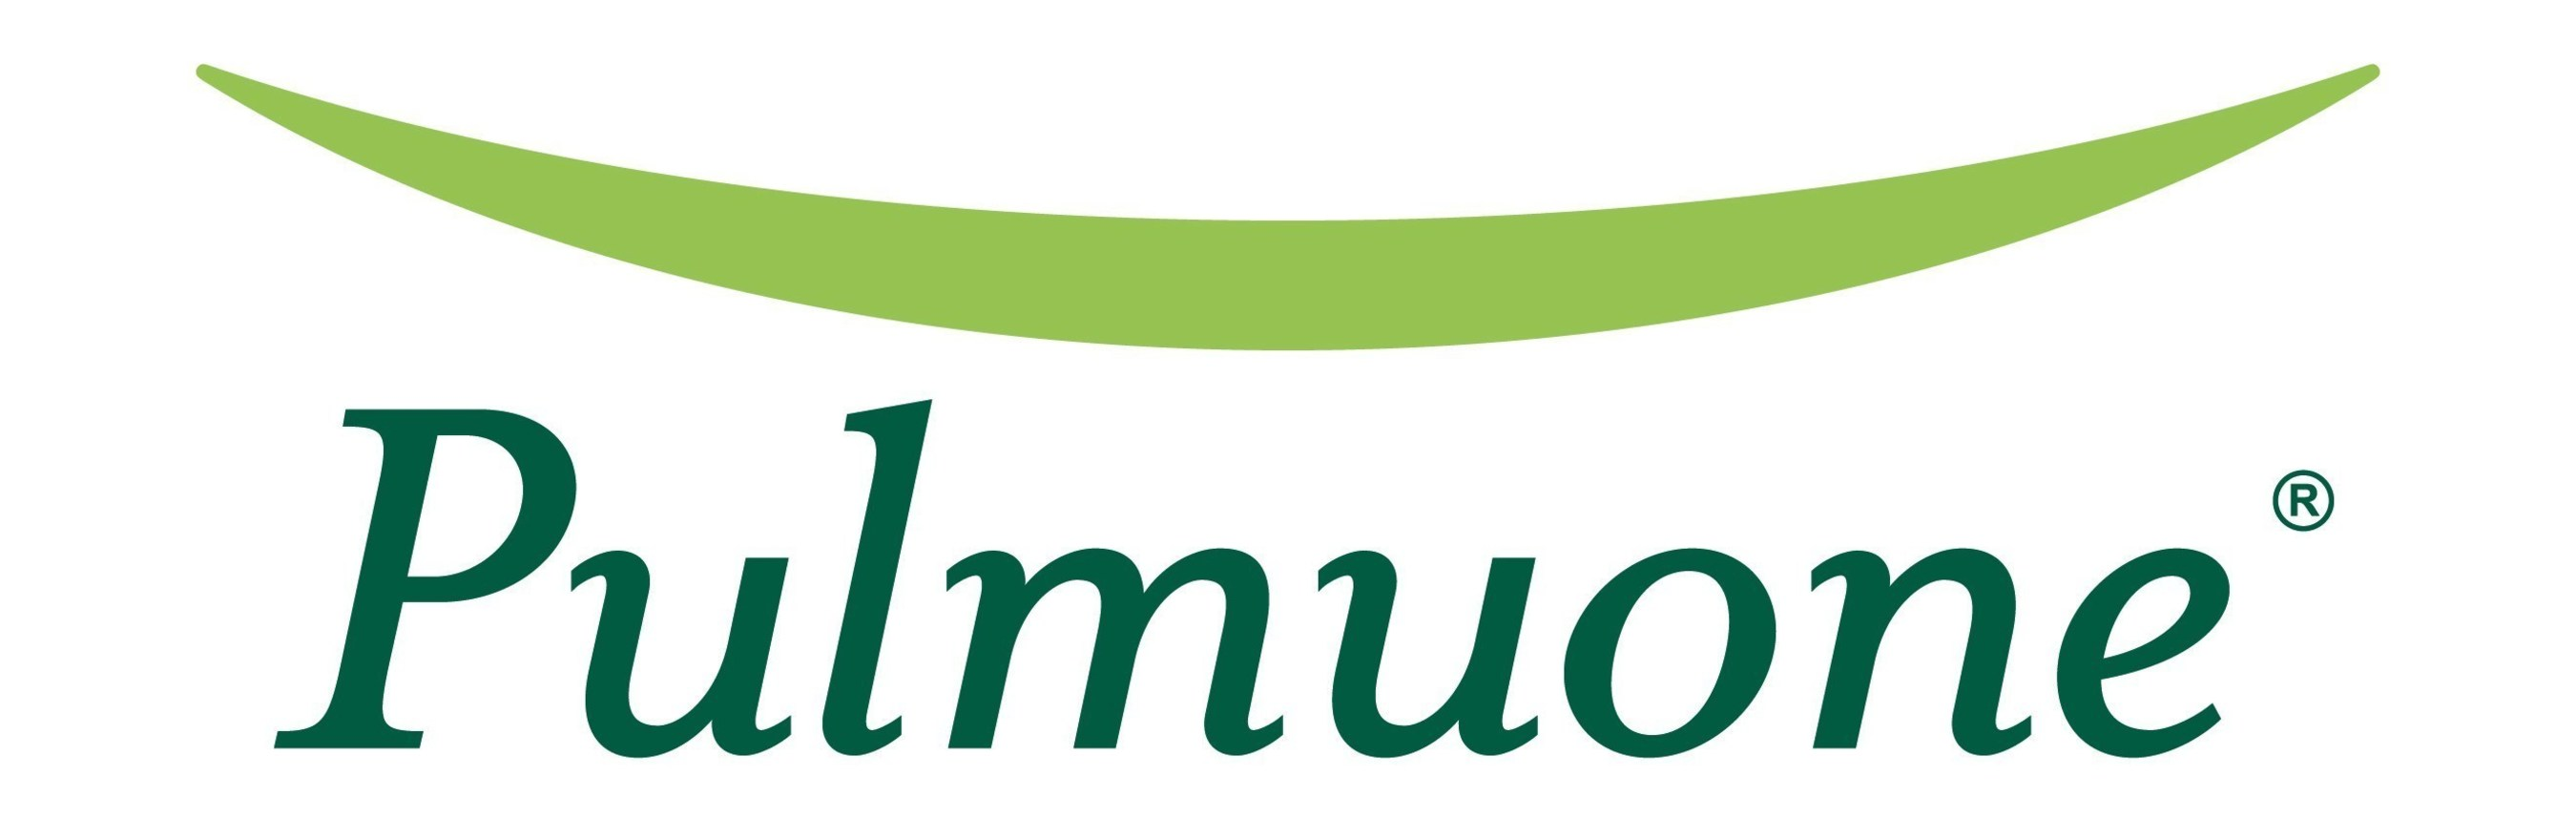 Pulmuone Foods Co., Ltd. logo